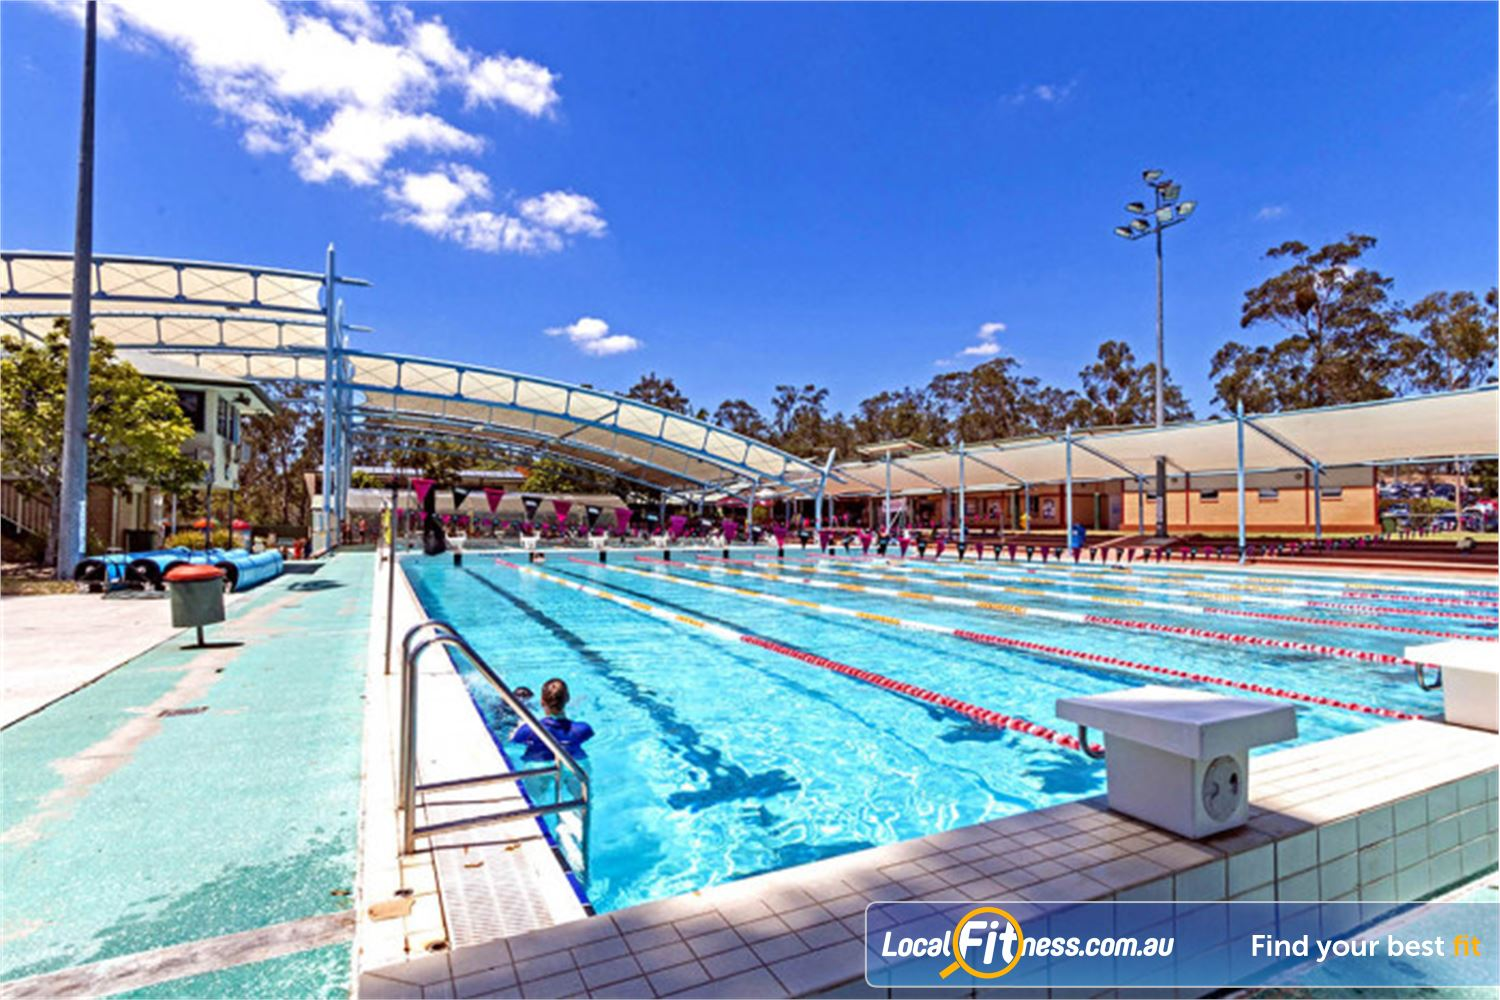 Albany Creek Leisure Centre Albany Creek Open for lap swimming, squad programs, Albany Creek swim school and more.